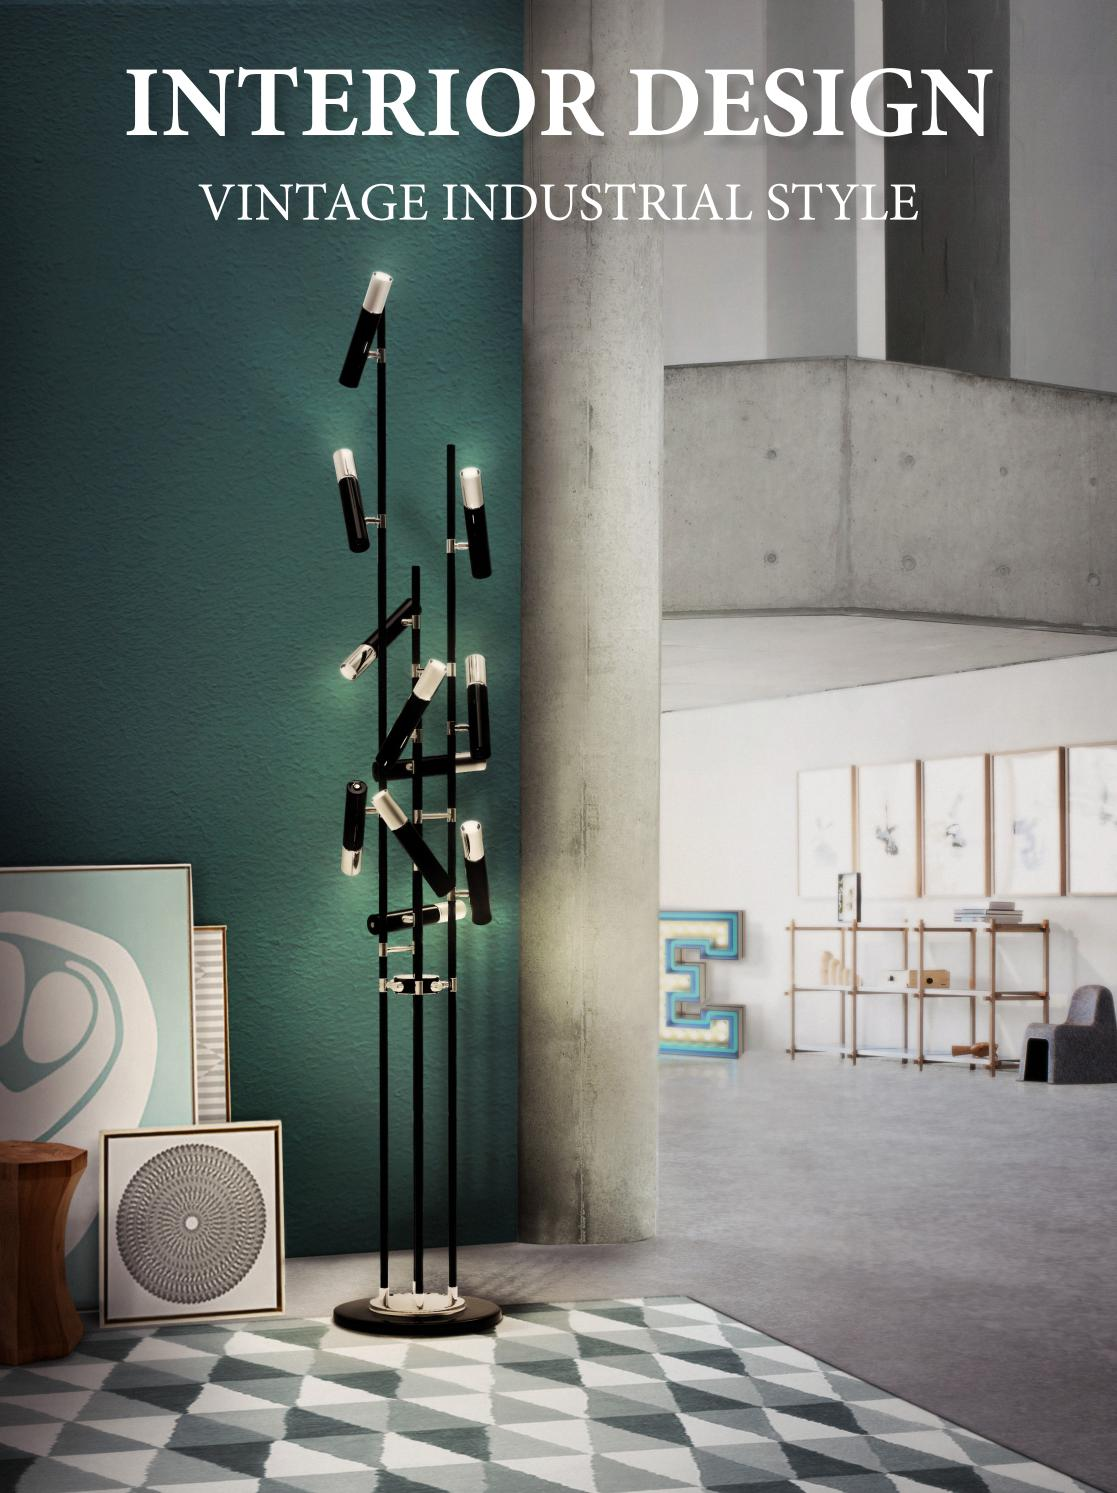 Interior design projects vintage style home living by covet house issuu